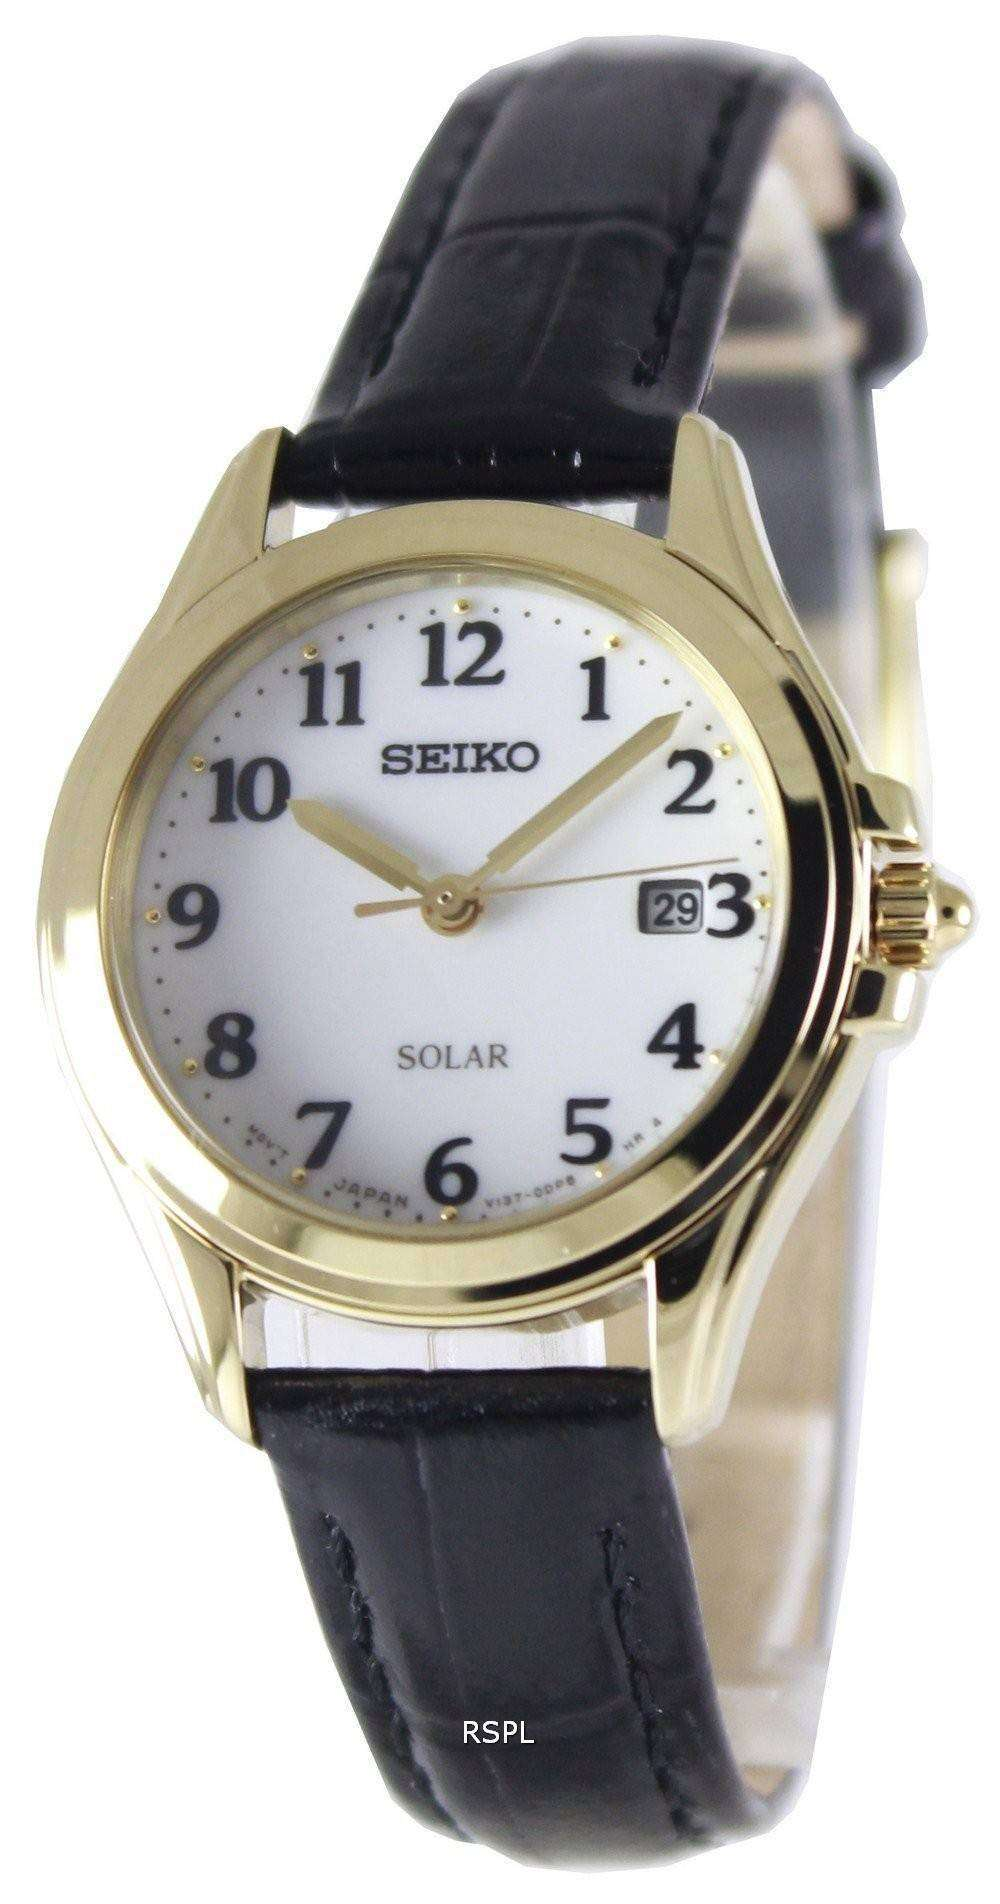 Seiko solar power reserve sut238p1 sut238p women 39 s watch for Solar power watches